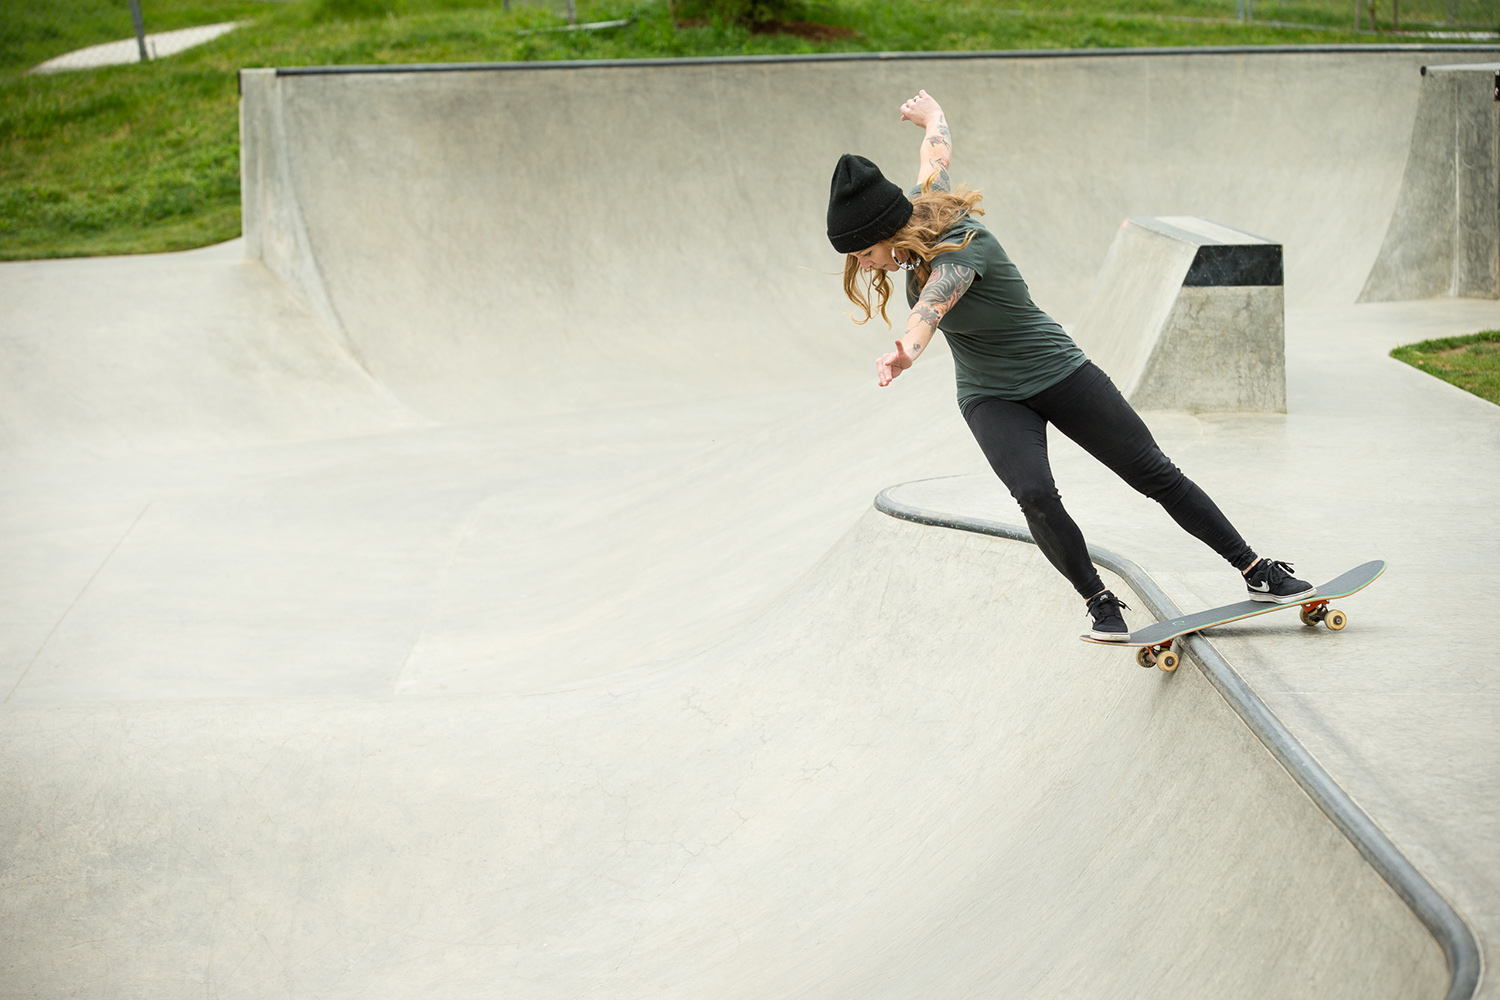 Lindsay Jo Holmes rocks out at the Luuwit Skate Spot.